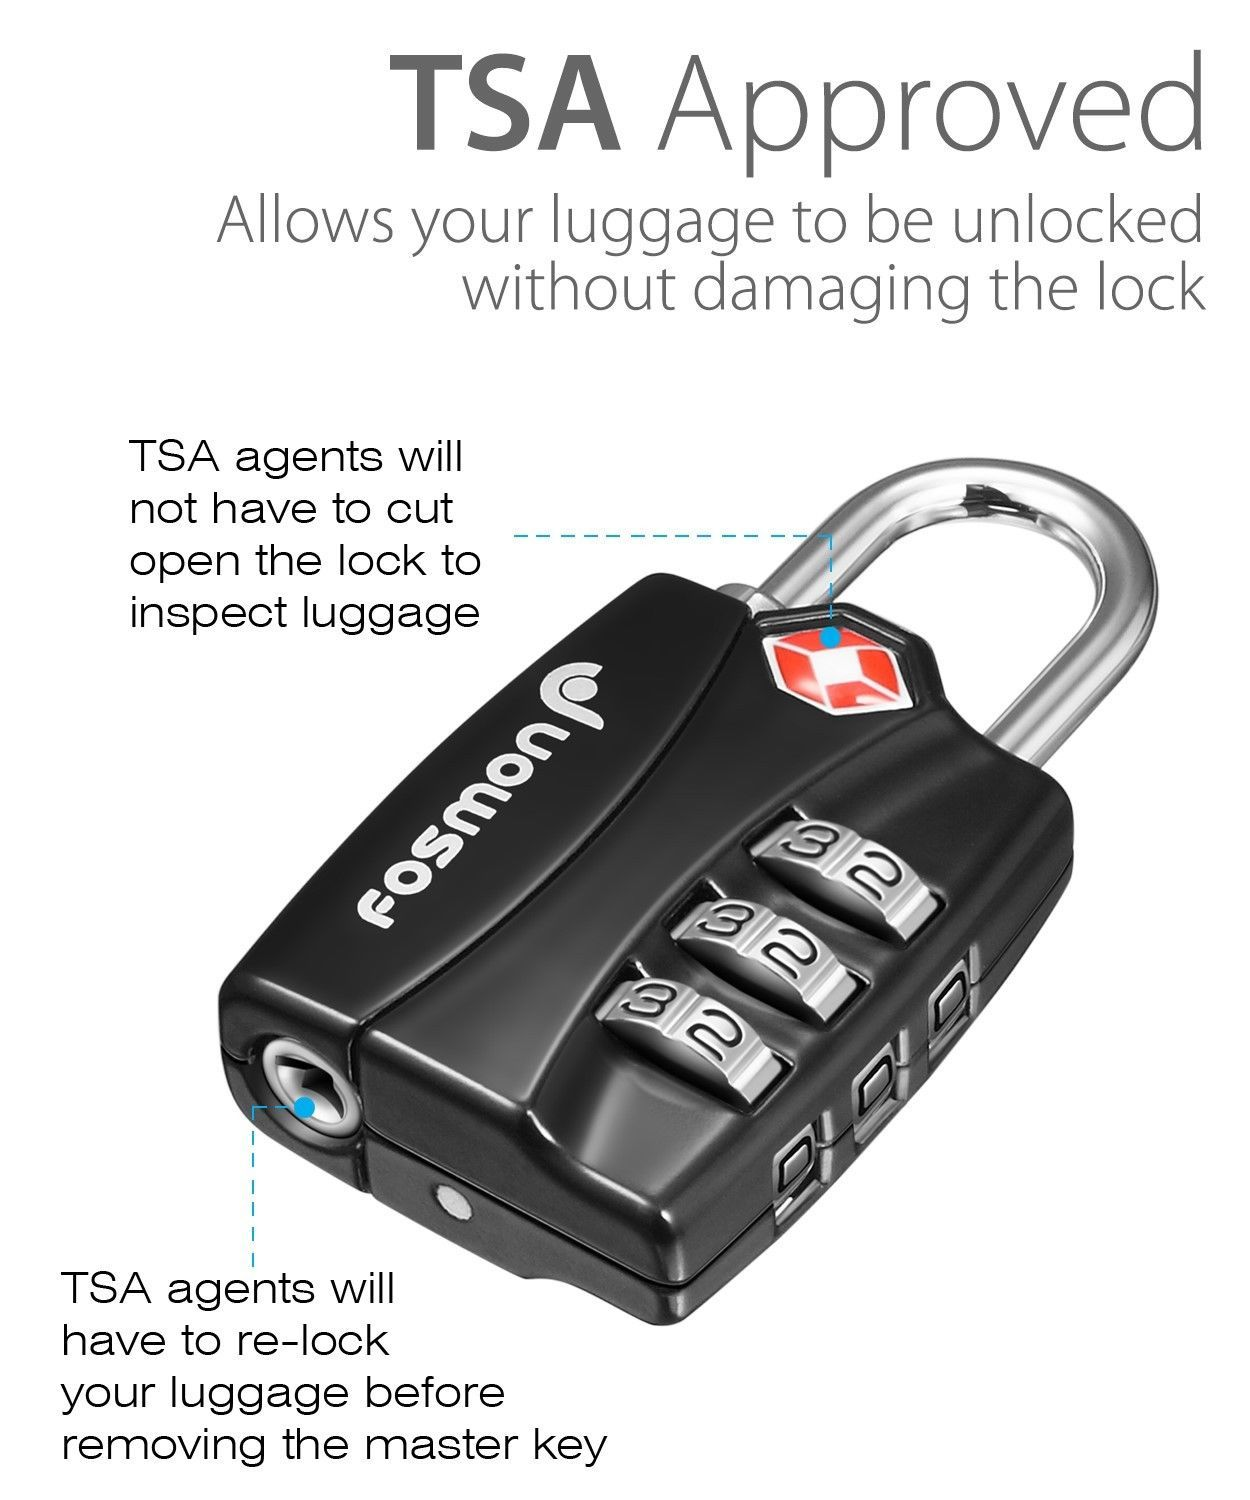 Details About 3xtsa Approve 3 Digit Combination Travel Suitcase Luggage Bag Lock Padlock Reset Tsa Approved Luggage Locks Luggage Locks Must Have Travel Accessories